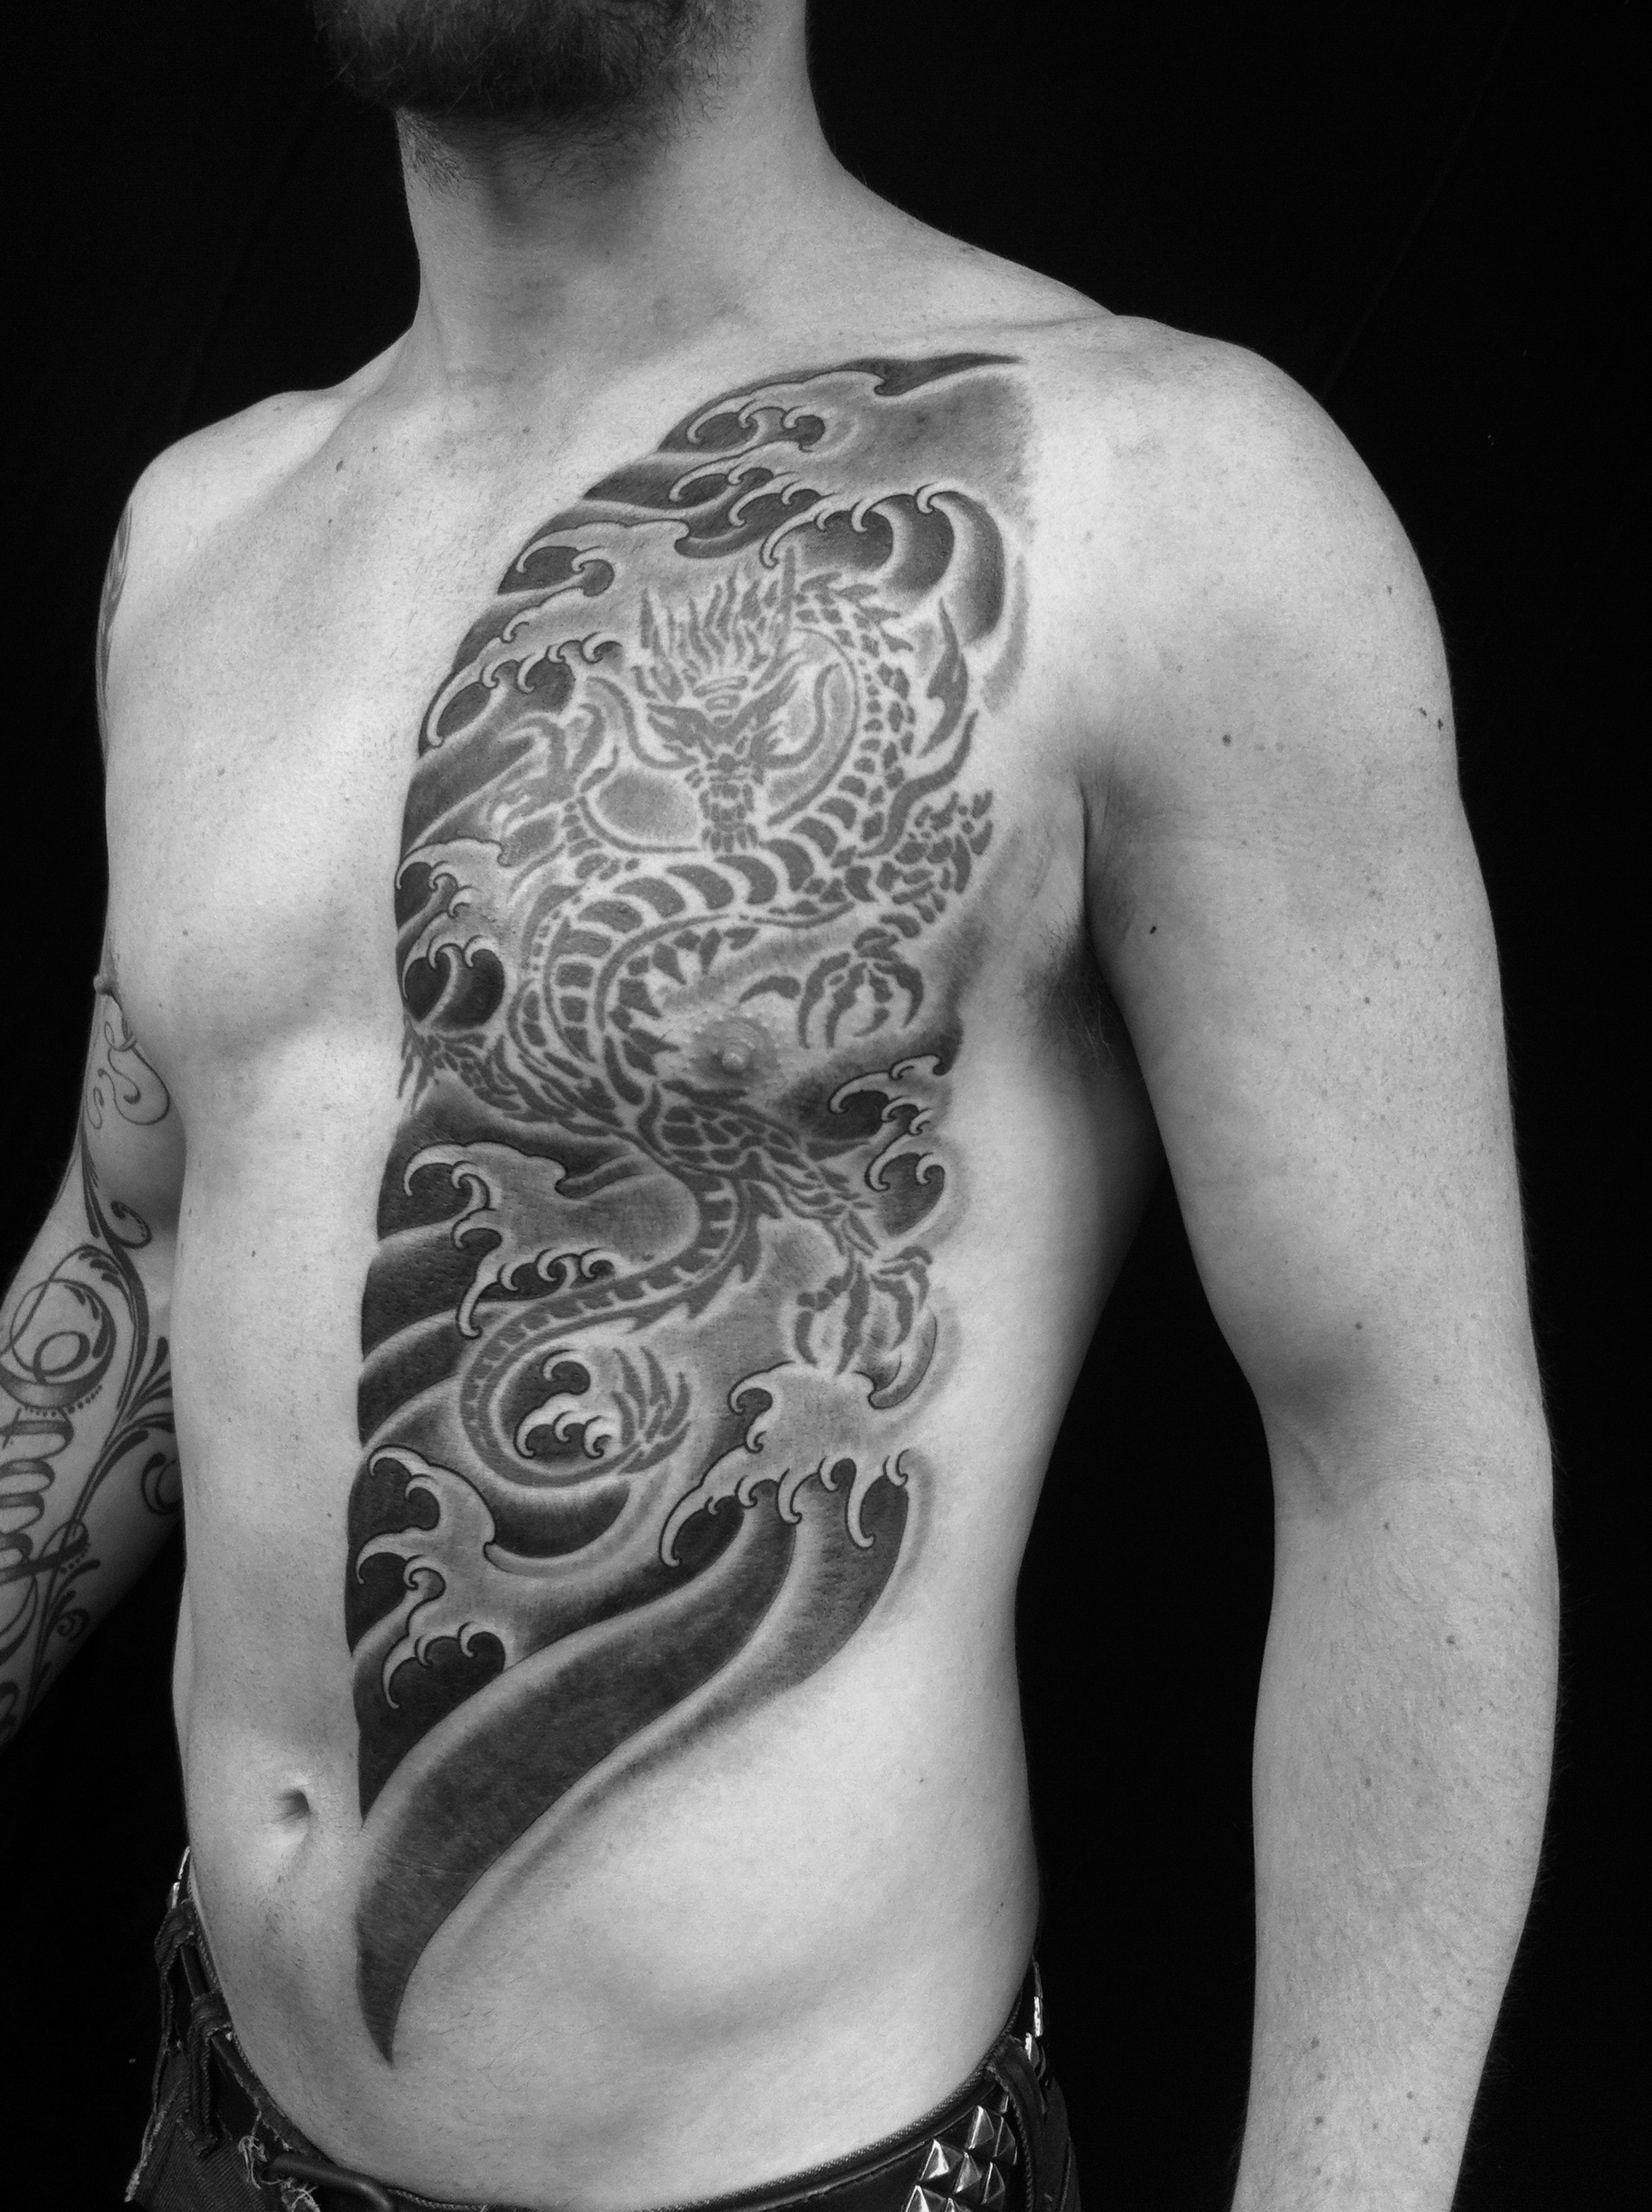 Water Tattoo Tribal tattoo Sydney tattoo Rhys Gordon.JPG